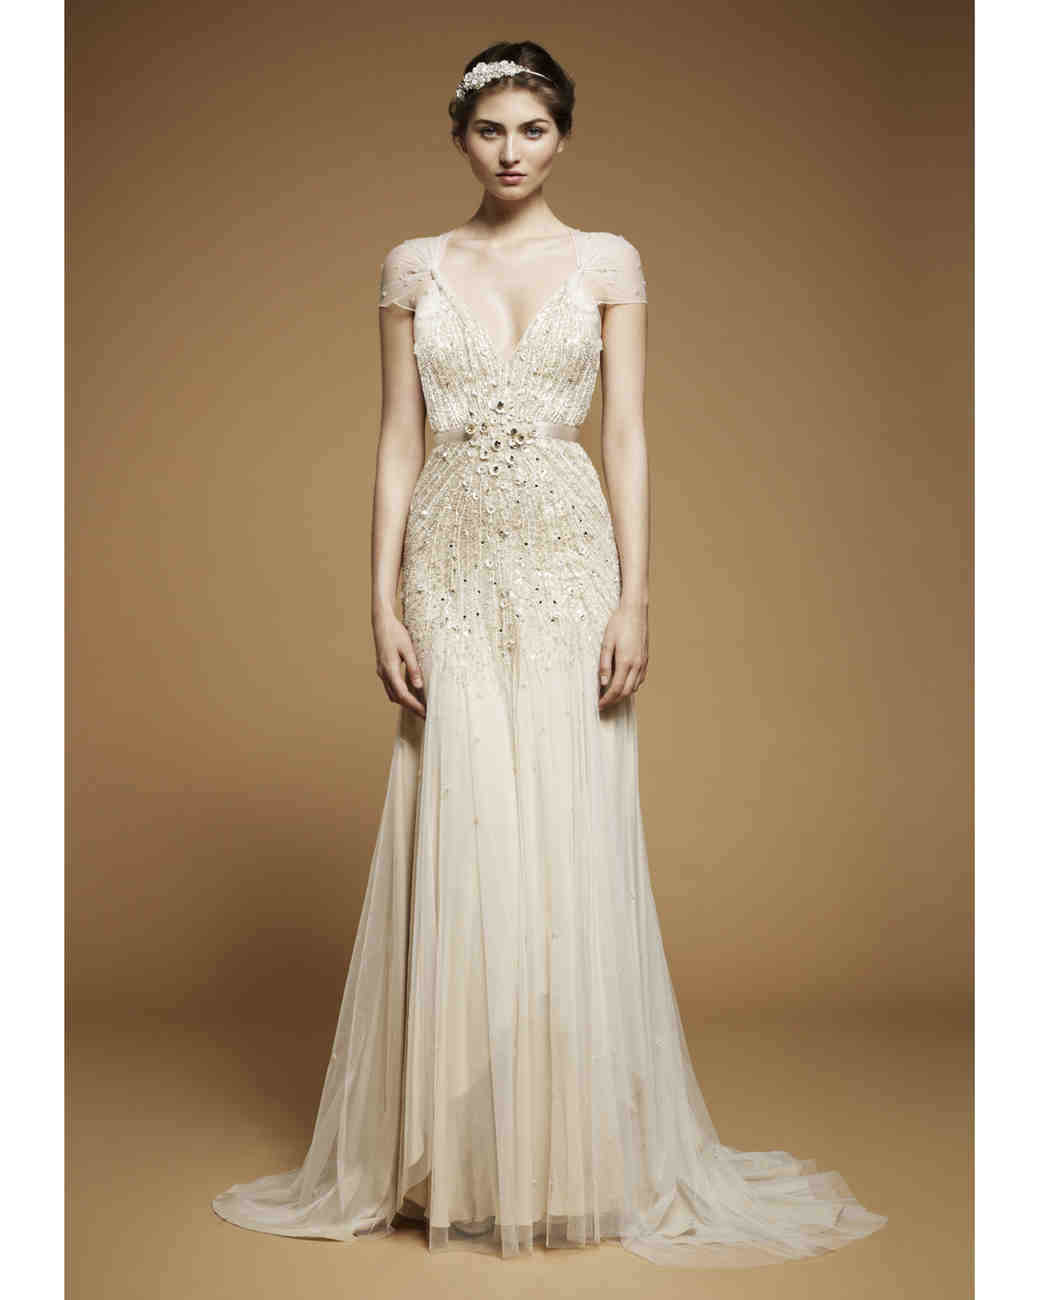 Glamorous Old Hollywood Style Wedding Dresses Fall 2012